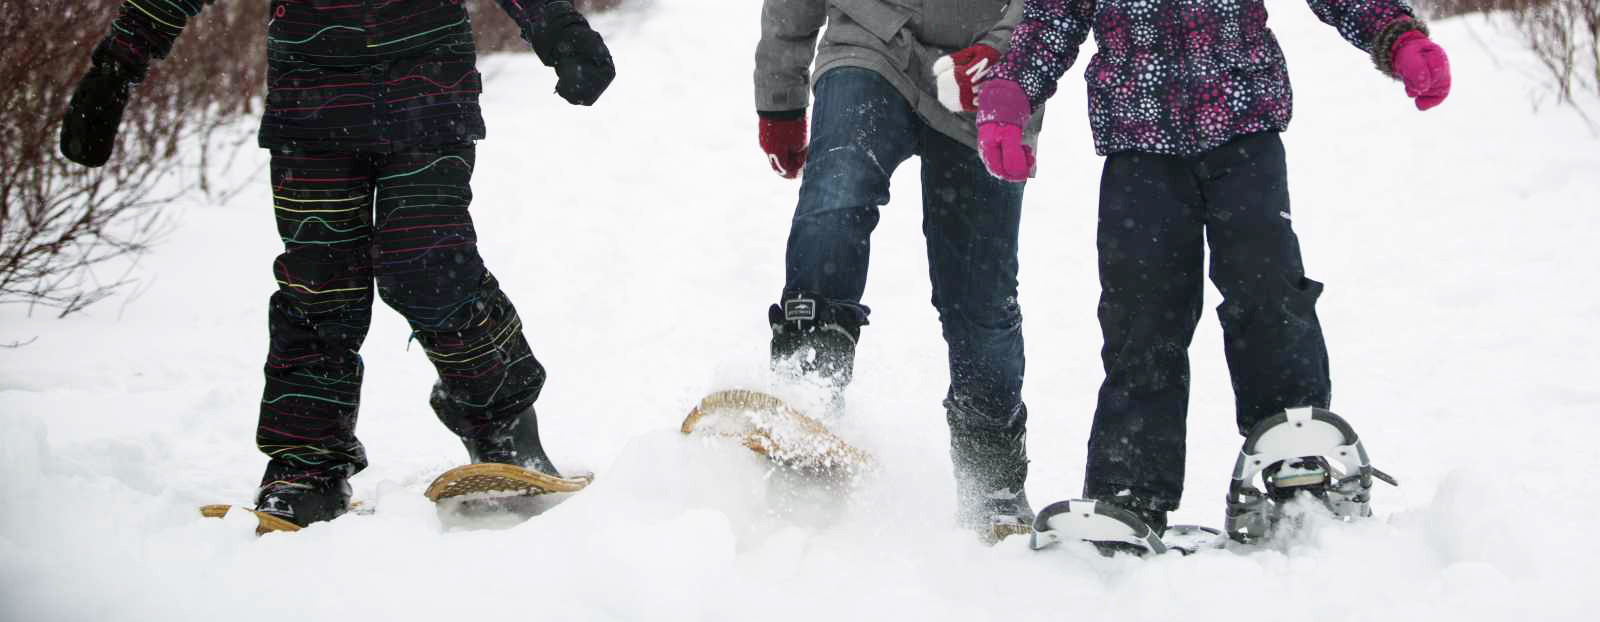 Youth snowshoeing